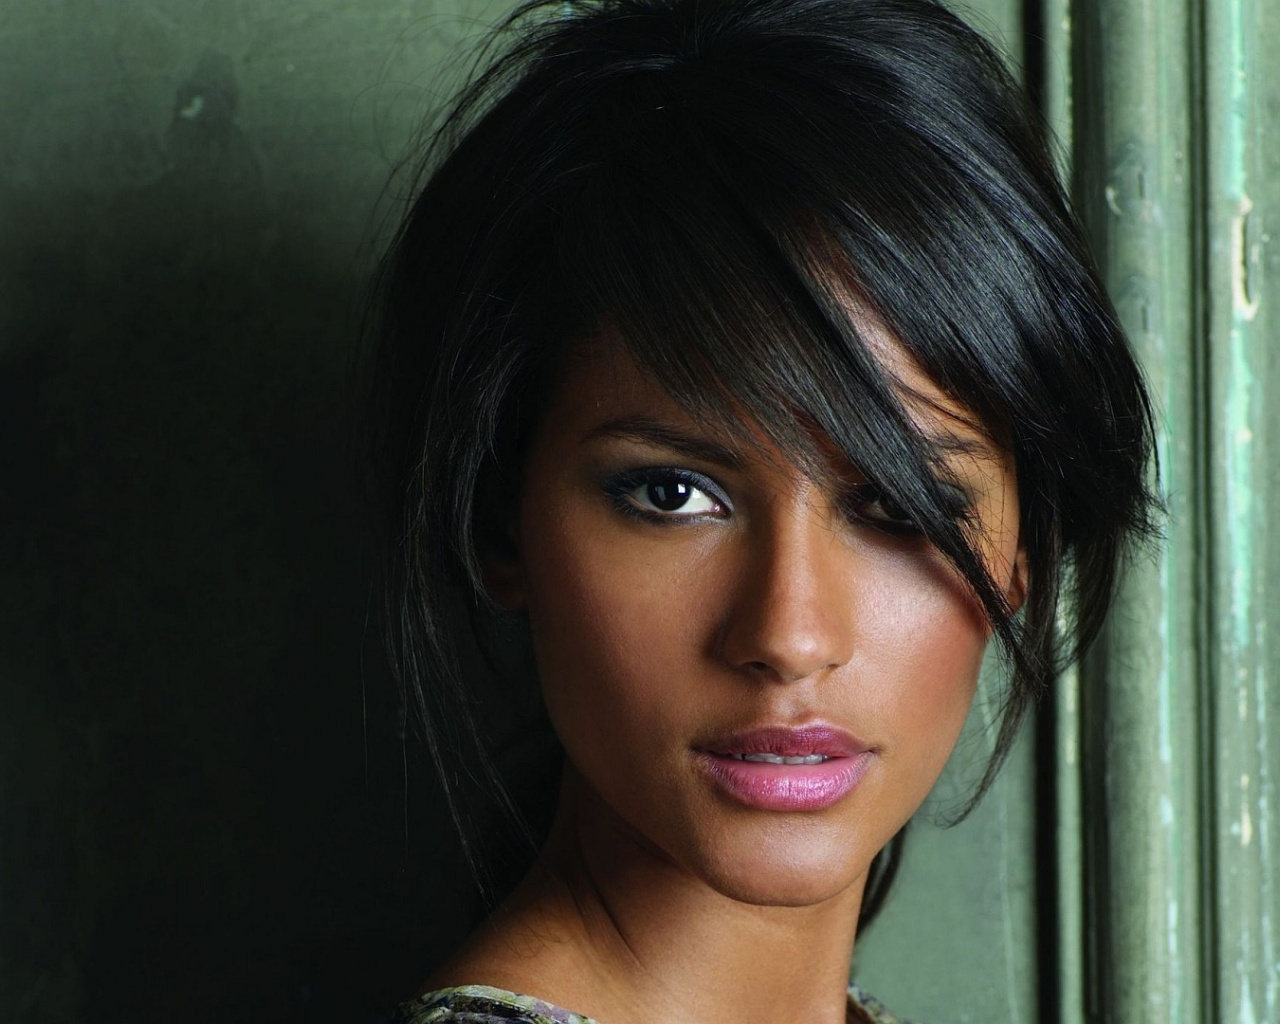 click to free download the wallpaper--Beautiful TV & Movies Image, Emanuela de Paula, Healthy Skin Color and Pink Lips 1280X1024 free wallpaper download